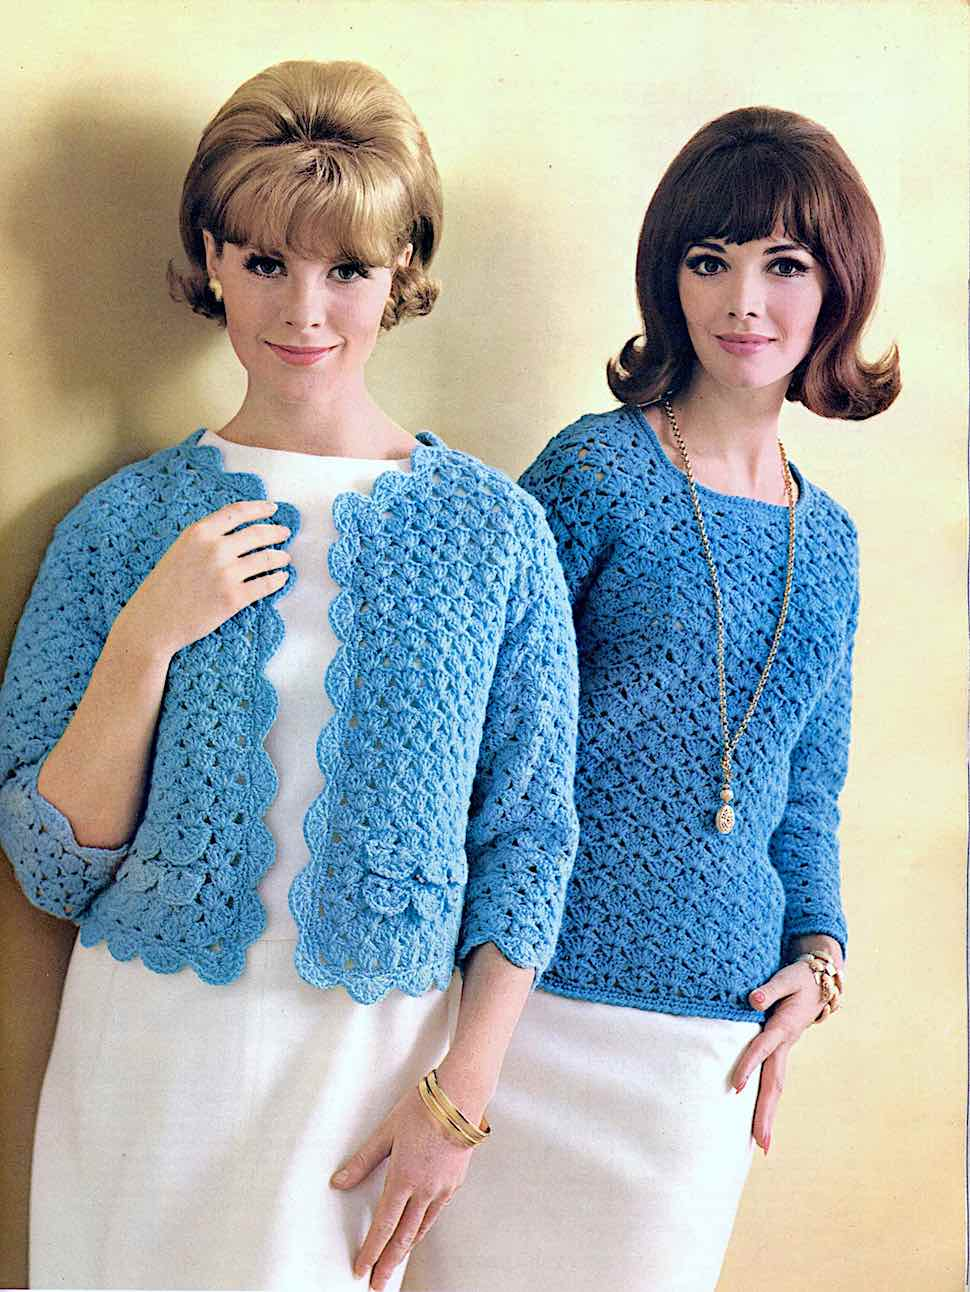 1968 fashion models in blue knitwear, with smiling confidence